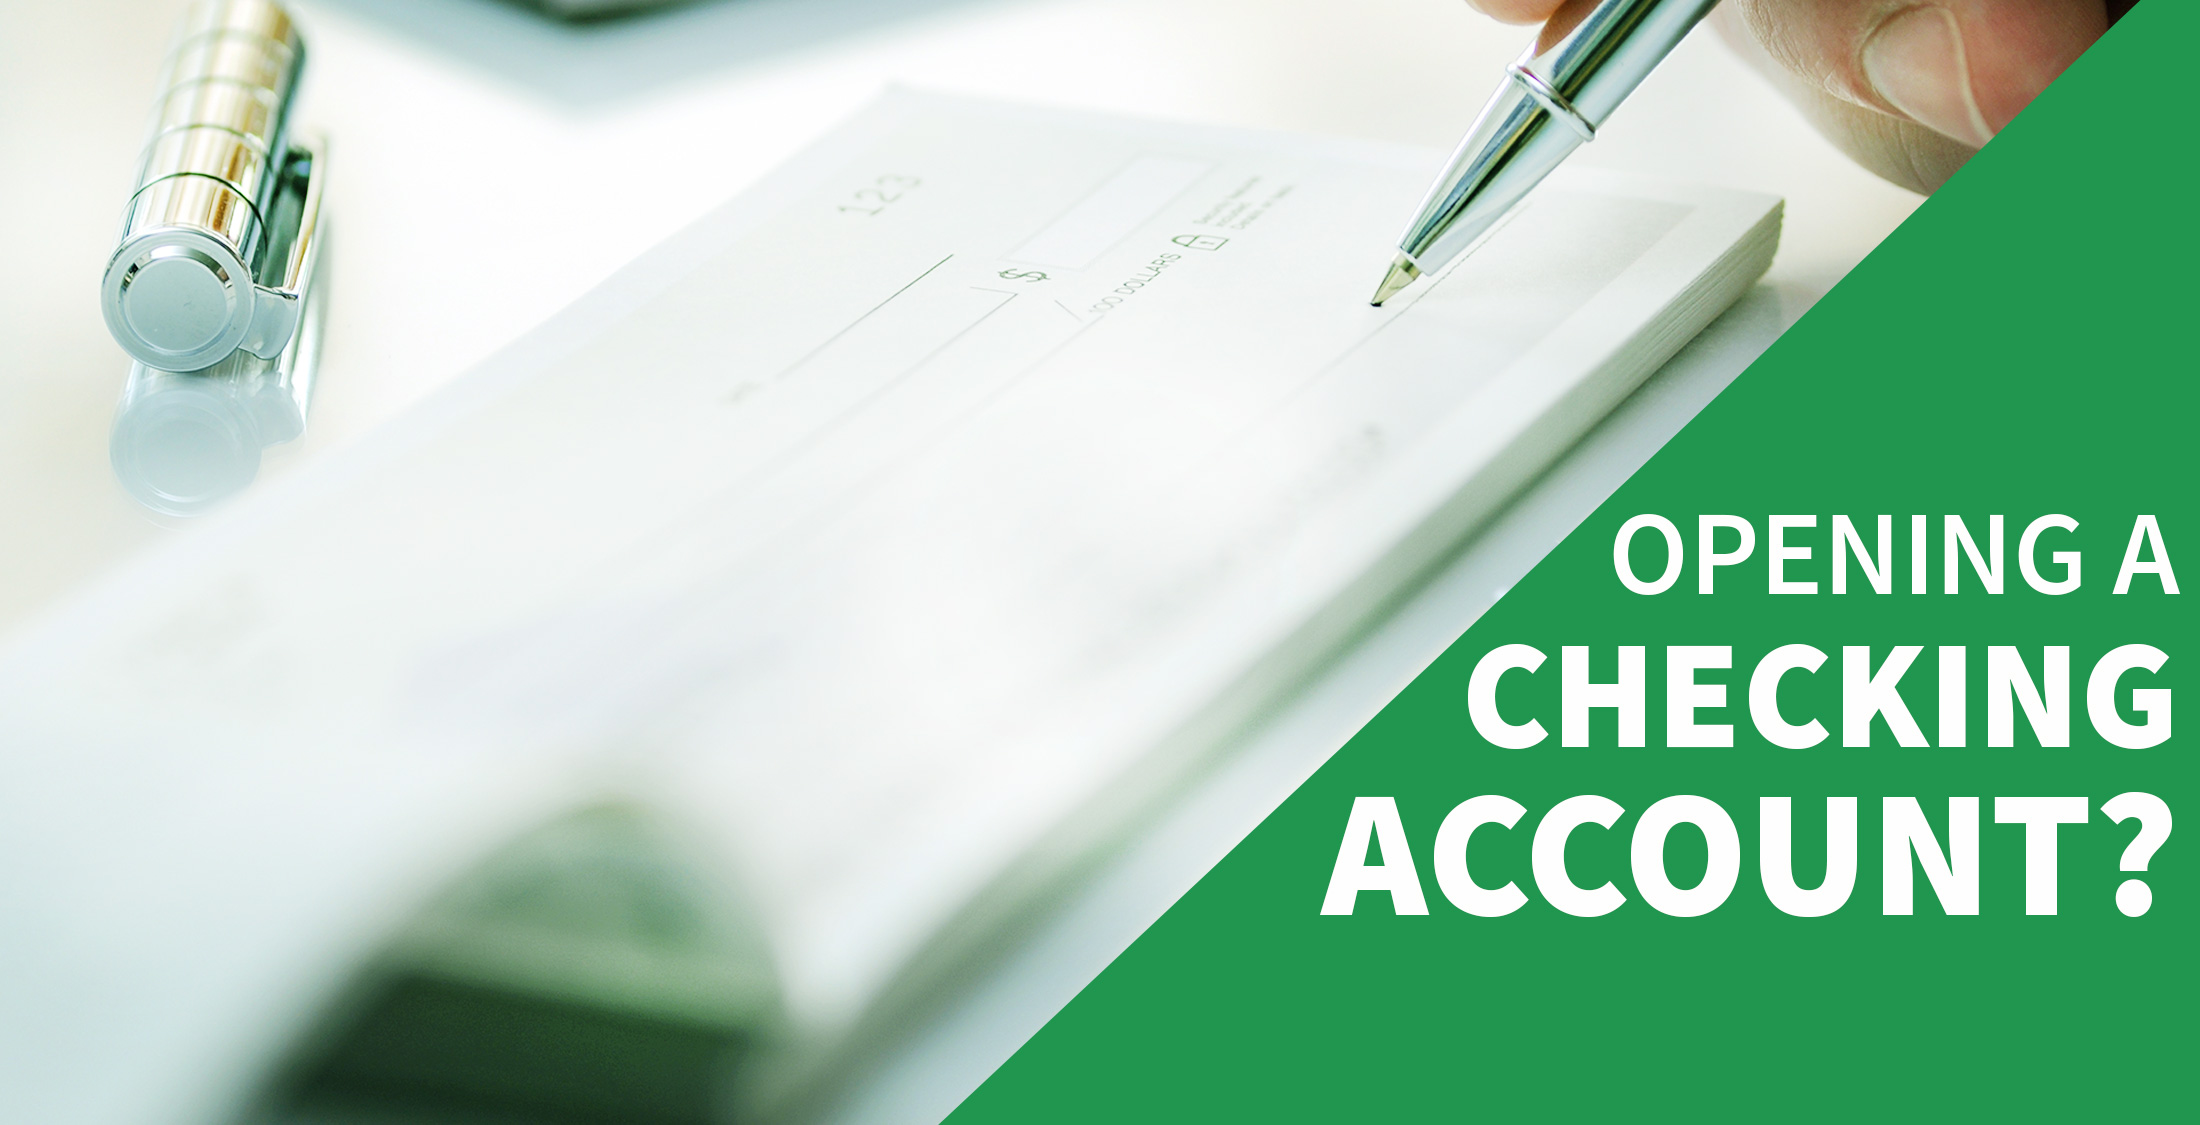 Student Checking Accounts Images